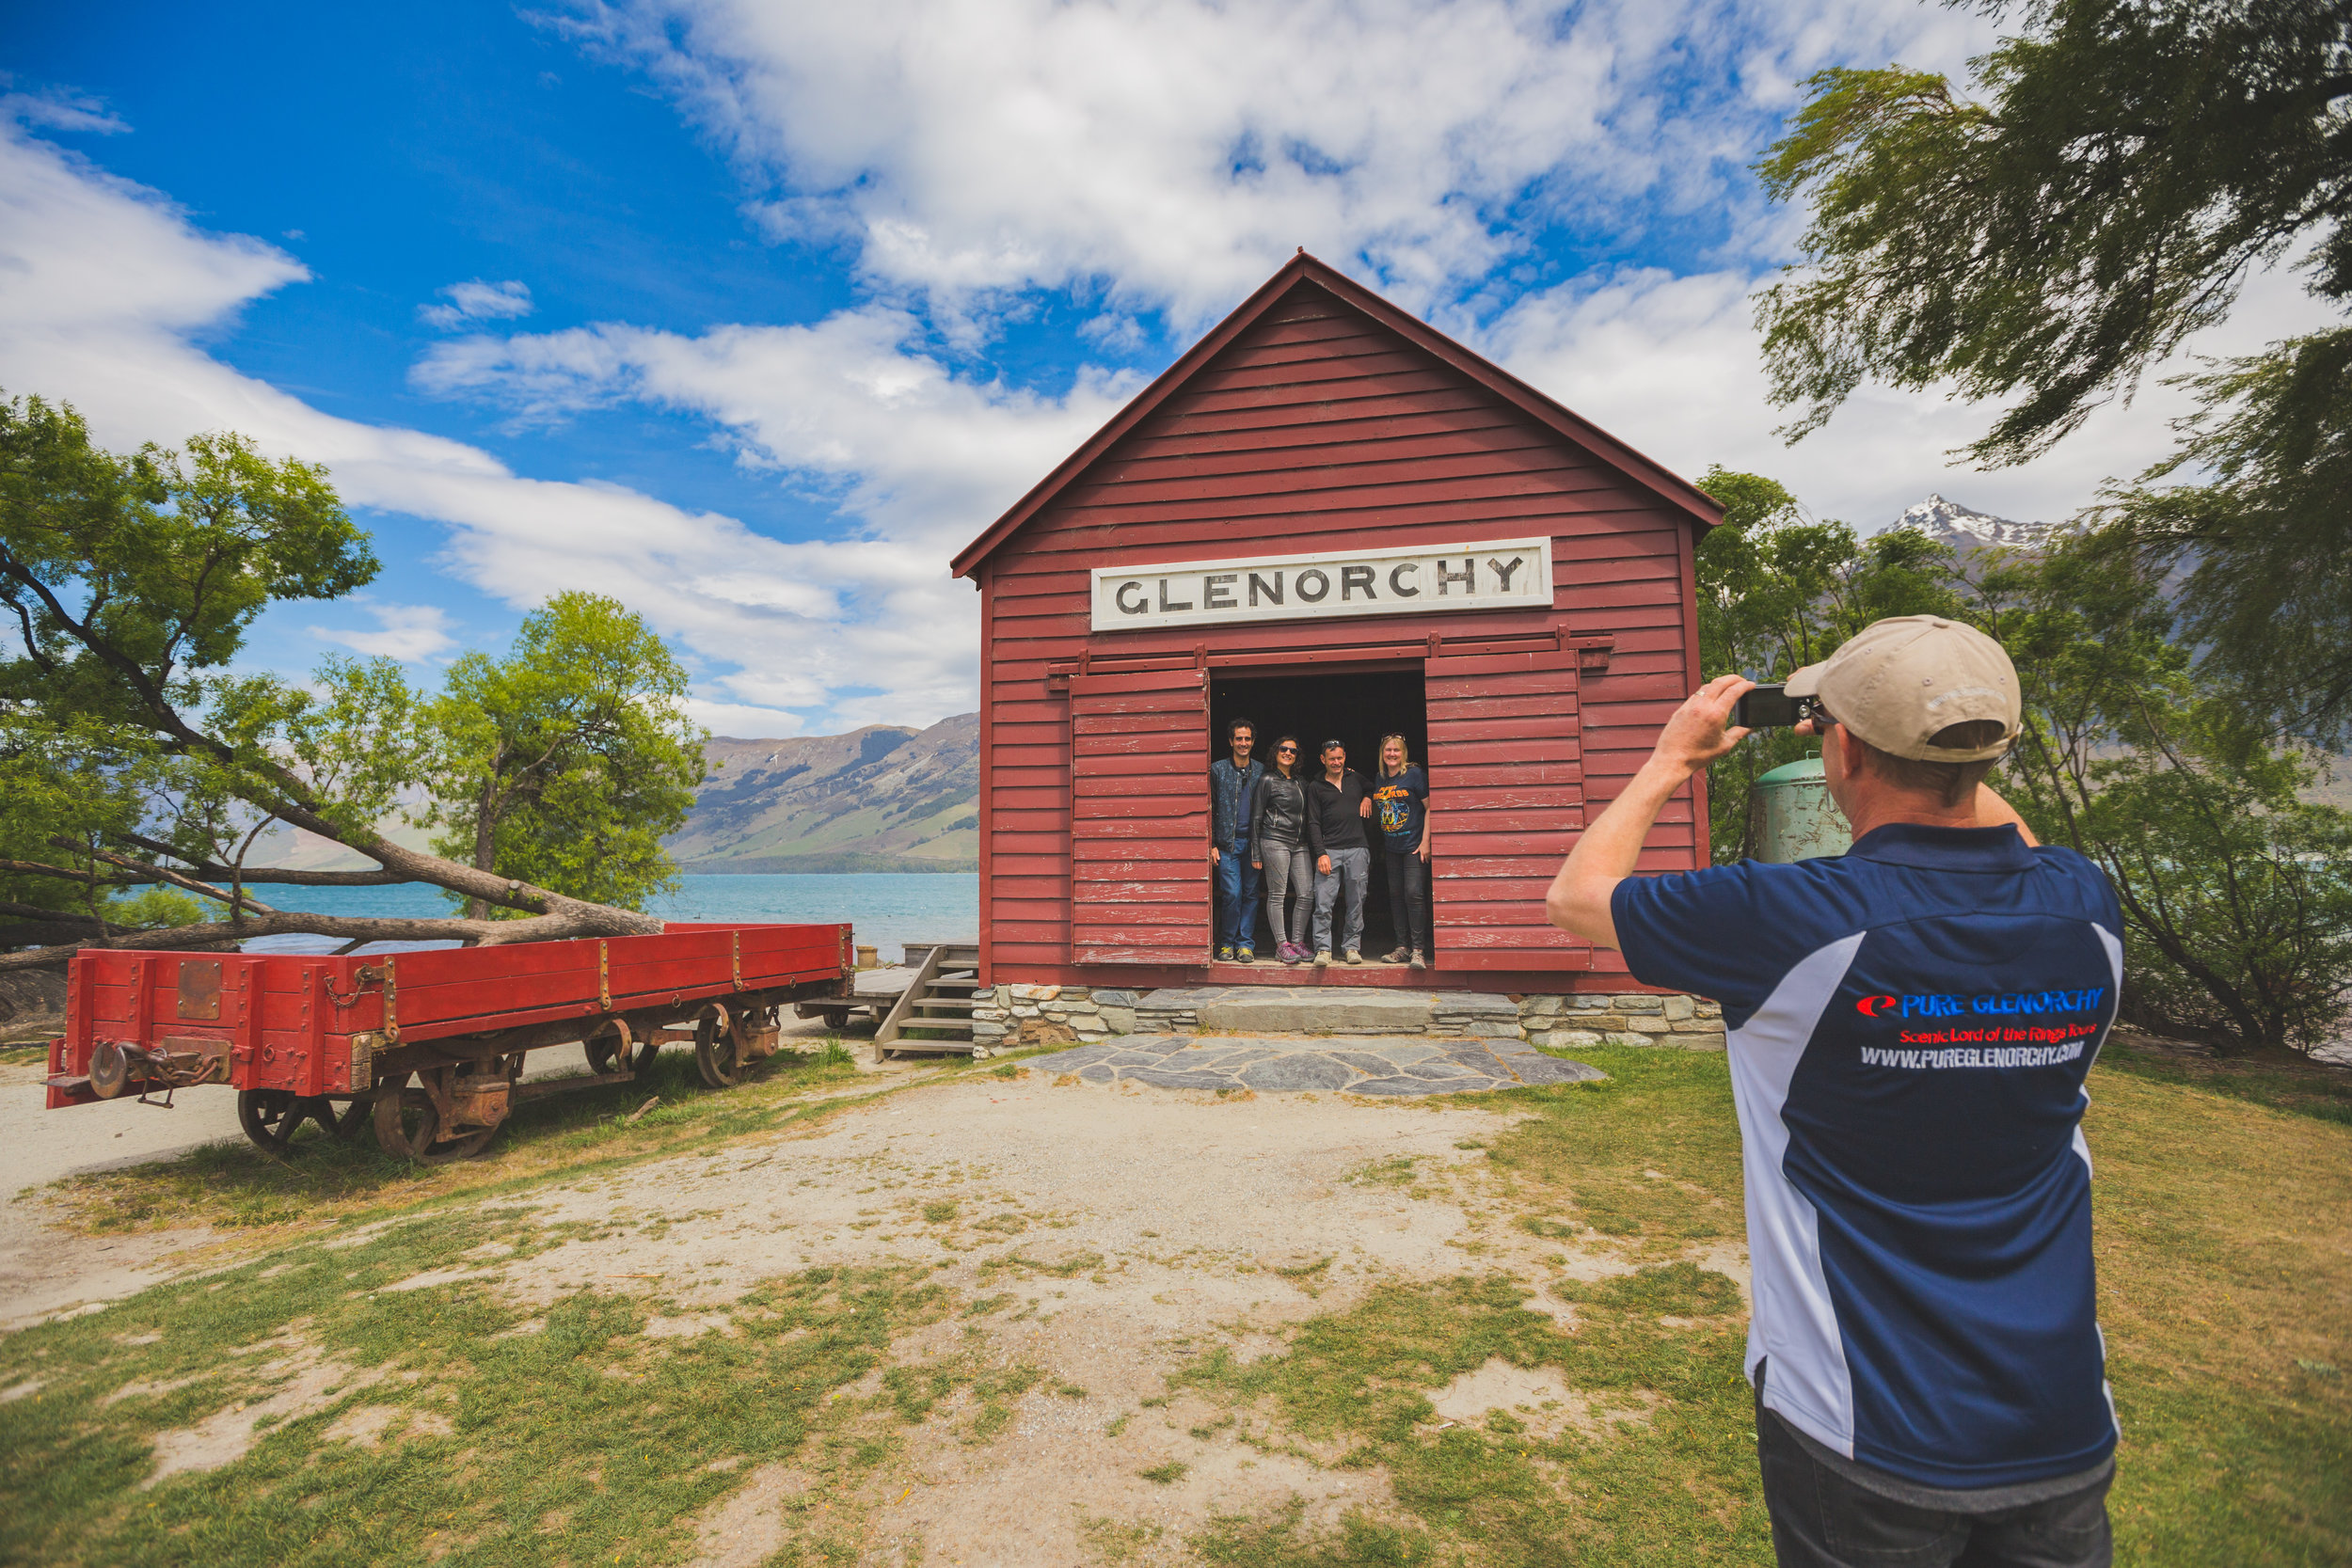 Glenorchy historic red shed.jpg